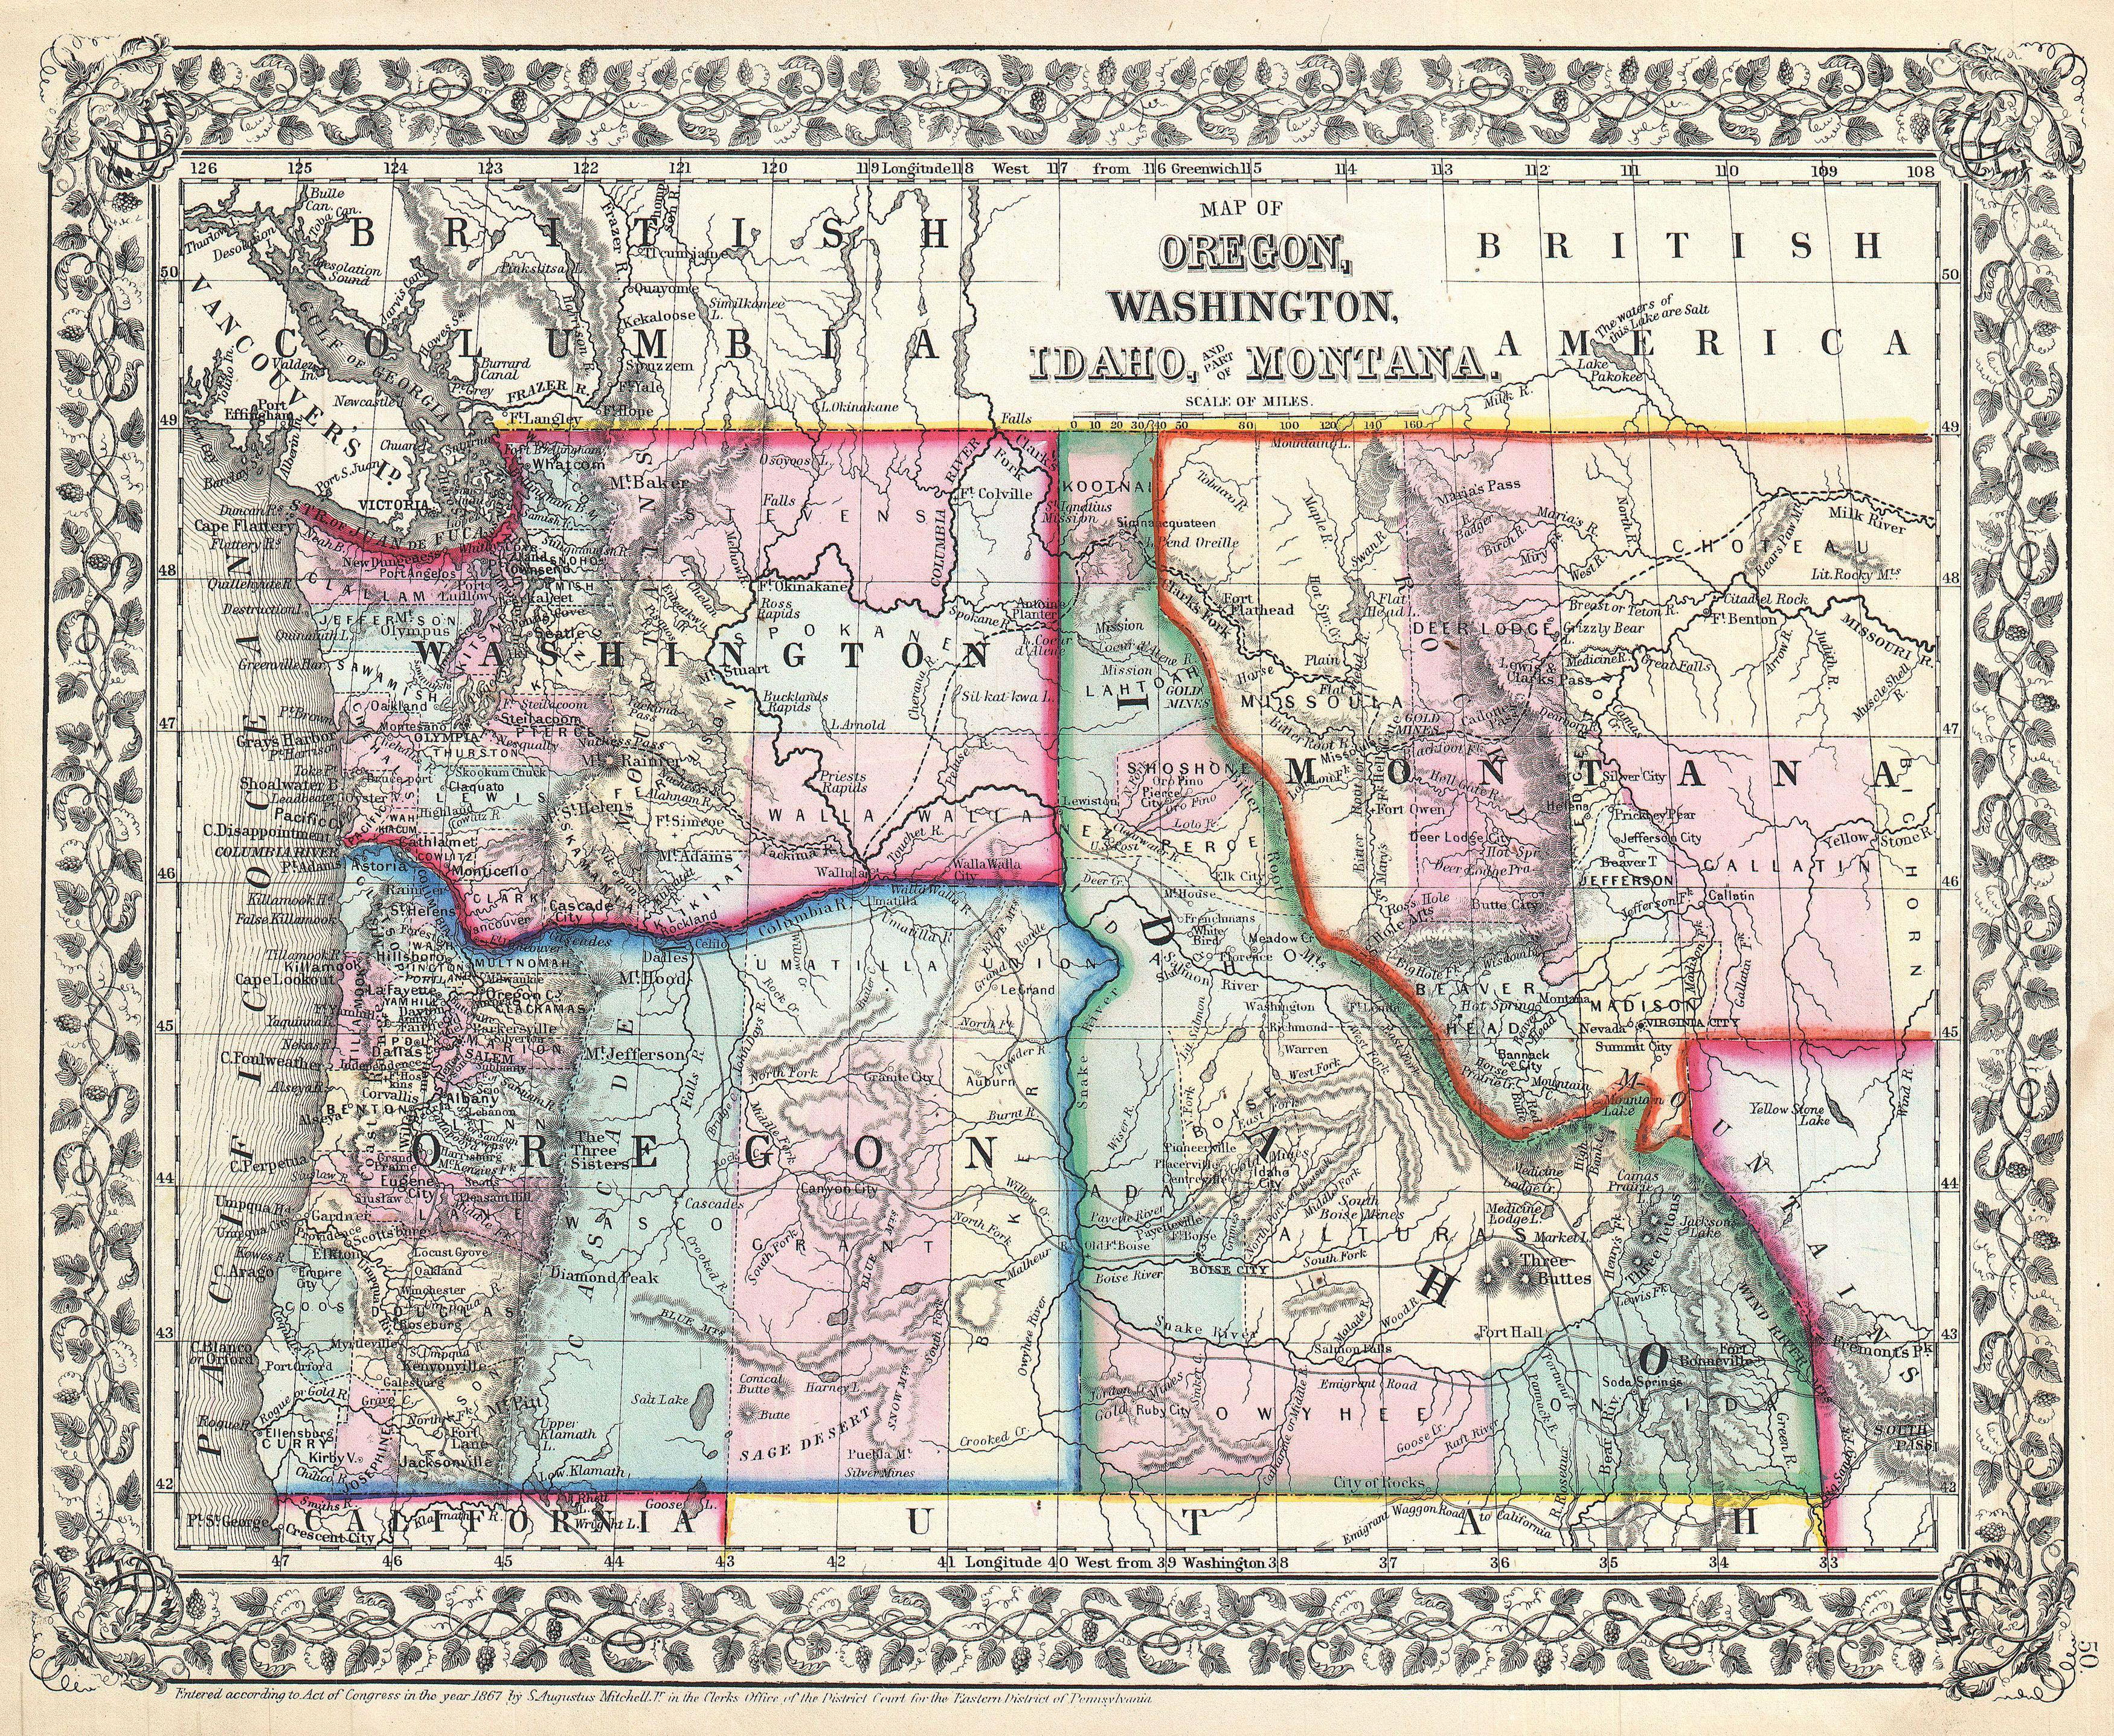 map of wyoming cities and towns with File 1867 Mitchell Map Of Oregon  Washington  Idaho And Montana   Geographicus   Waoridmt Mitchell 1867 on City Map in addition New Mexico County Map likewise Search in addition Pr moreover Lamarvalley.